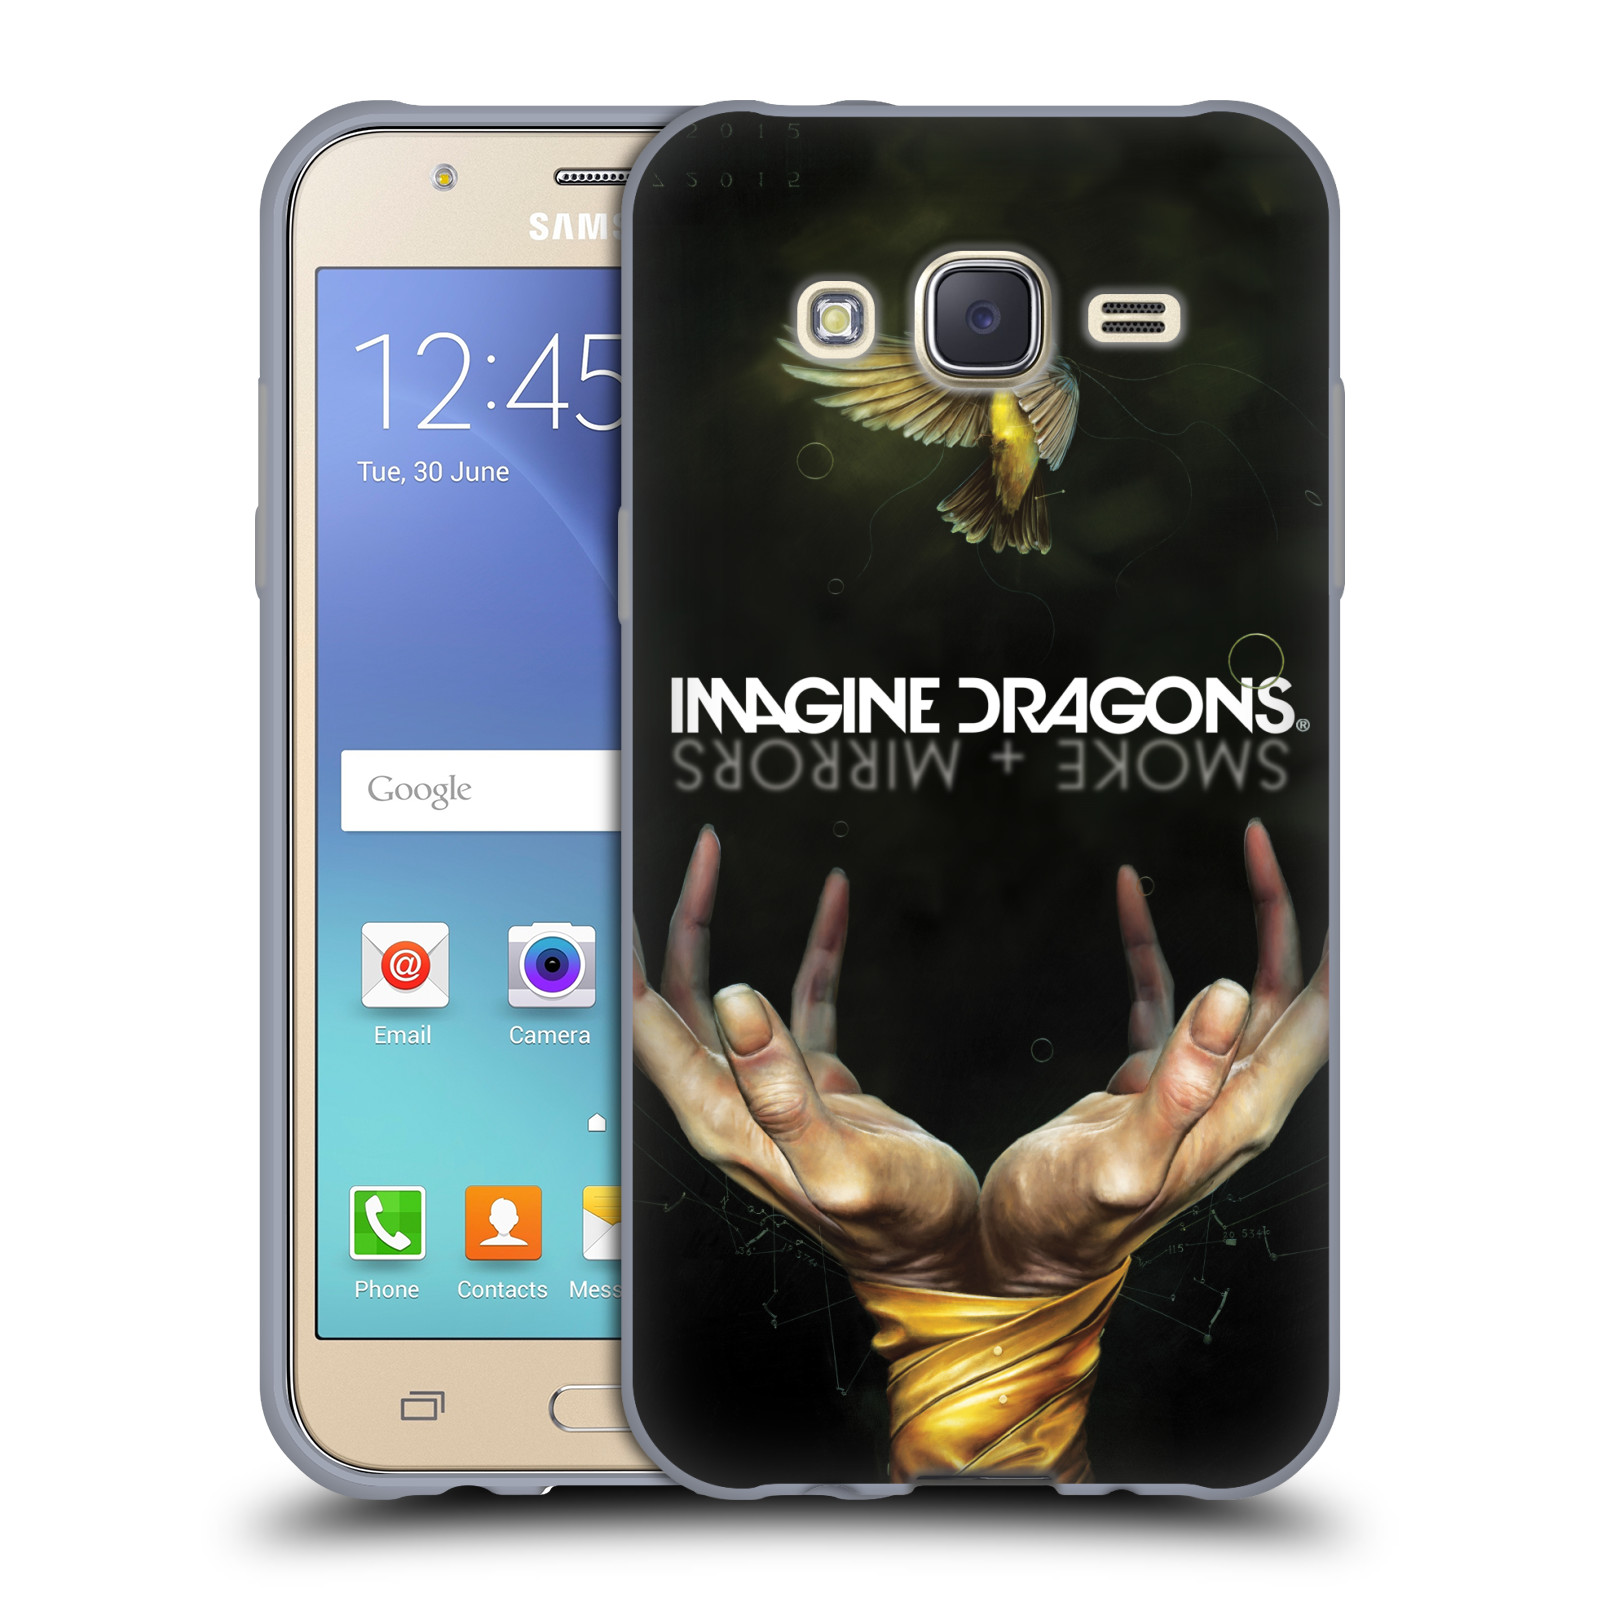 HEAD CASE silikonový obal na mobil Samsung Galaxy J5 2015 (J500) hudební skupina Imagine Dragons SMOKE and MIRRORS